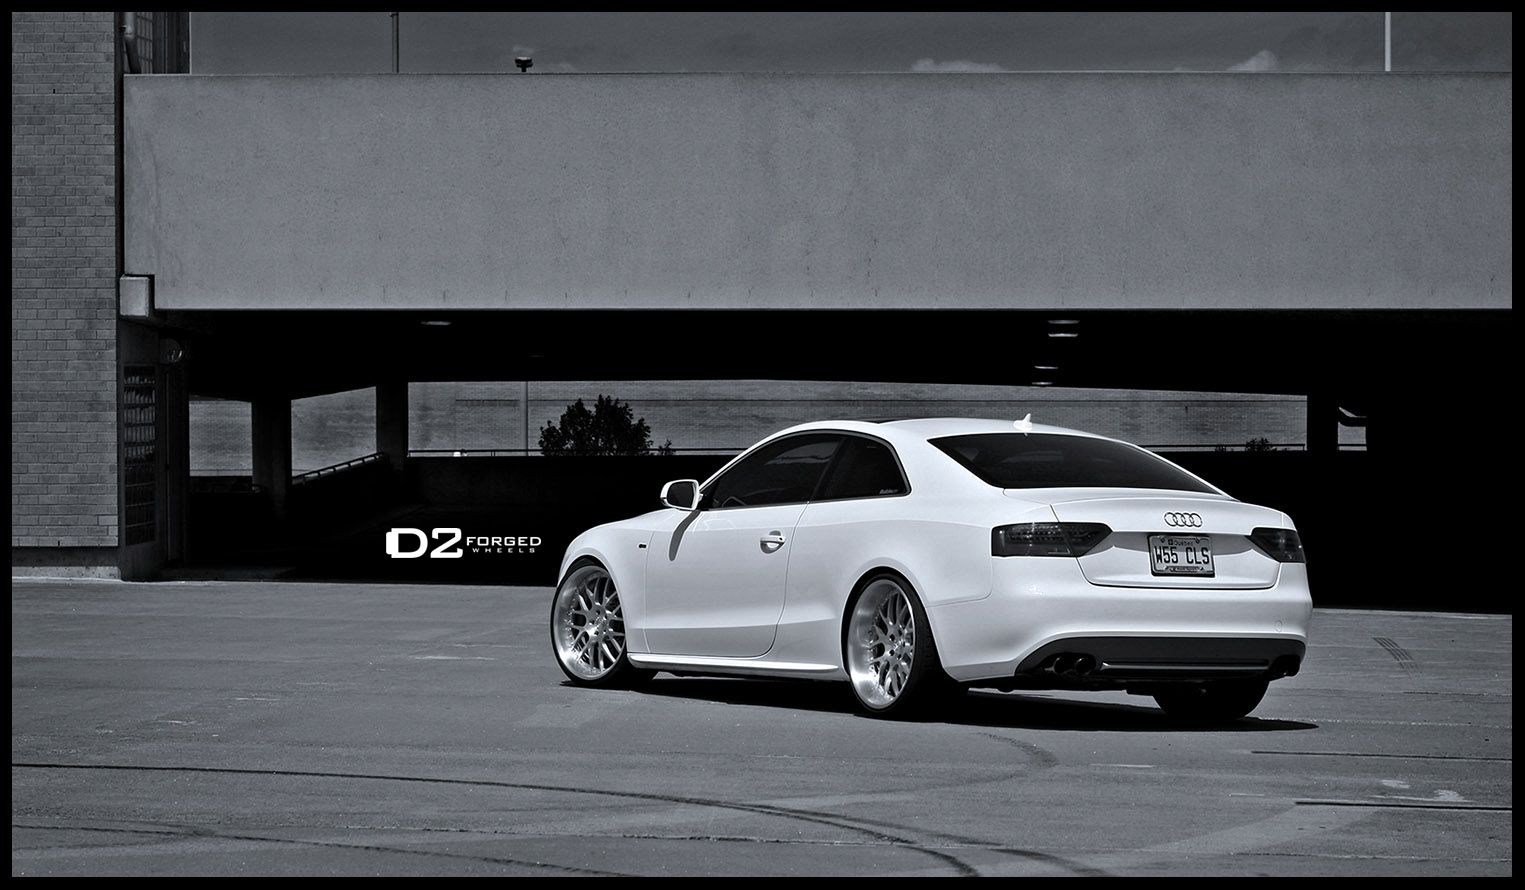 2012 audi a5 s line 20 d2forged vs1 wheels d2forged wheels fuzion whipz pinterest audi a5 audi and wheels